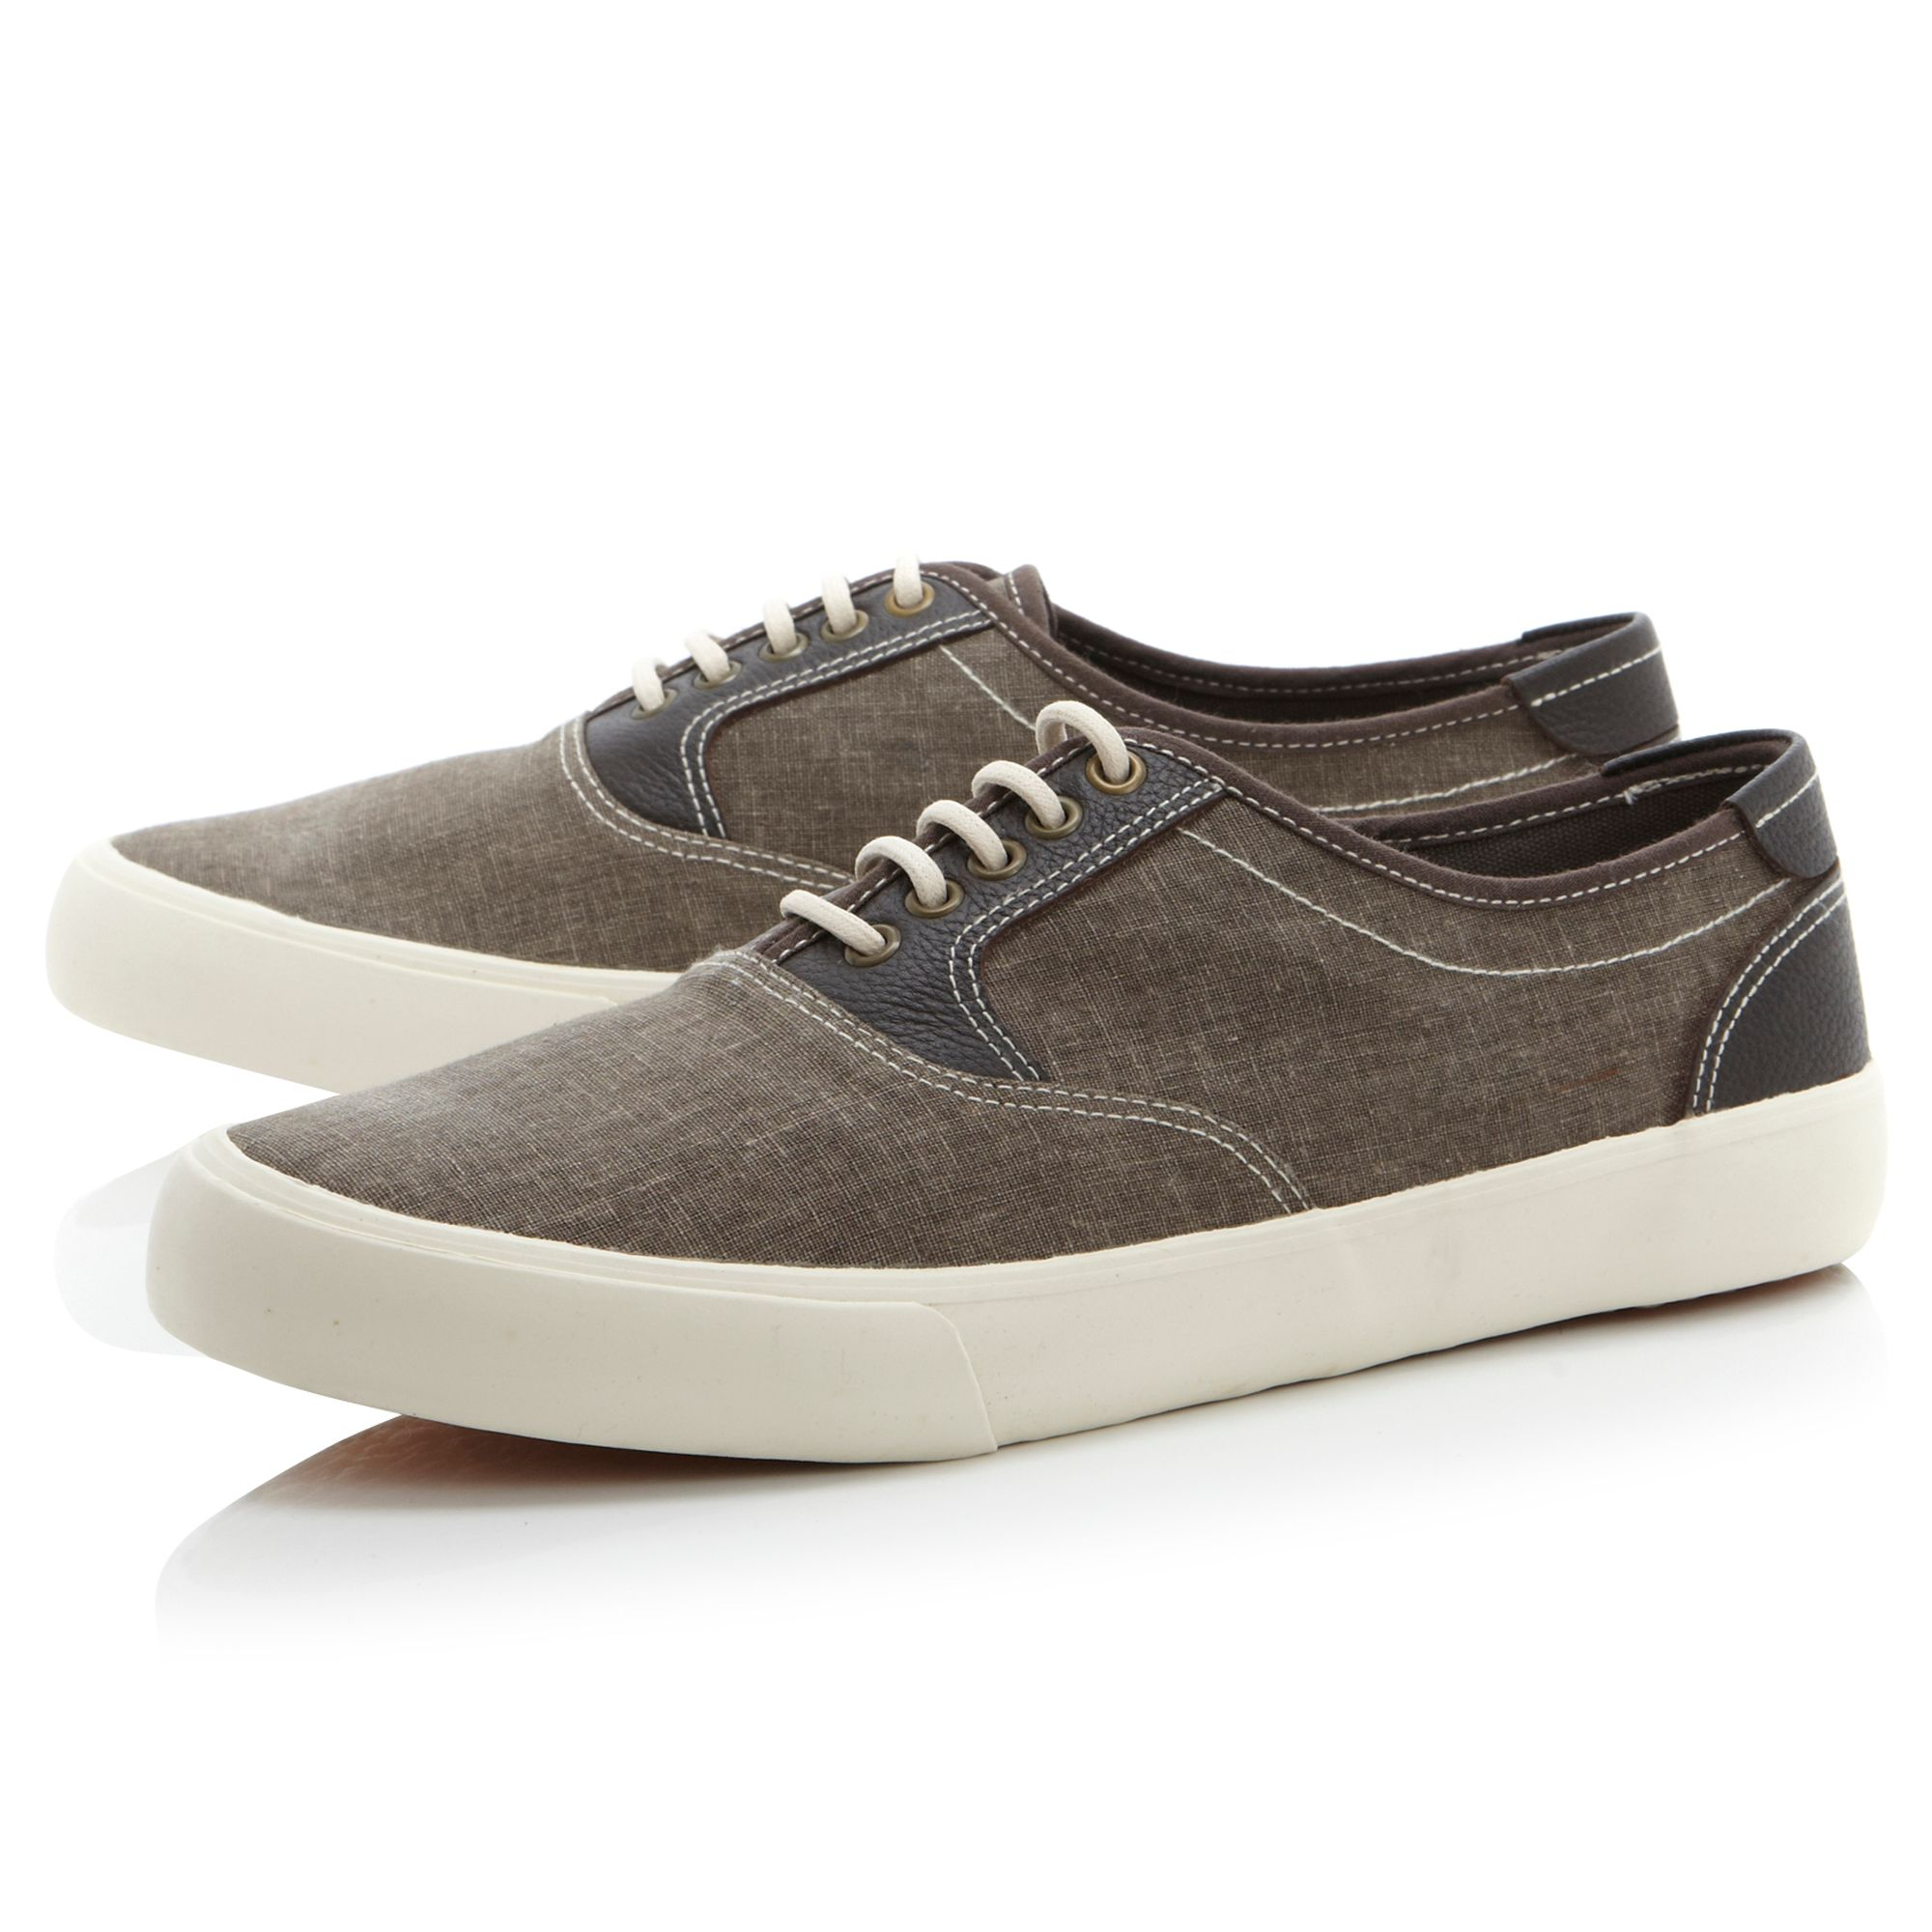 Dune tricks canvas plimsoll shoes